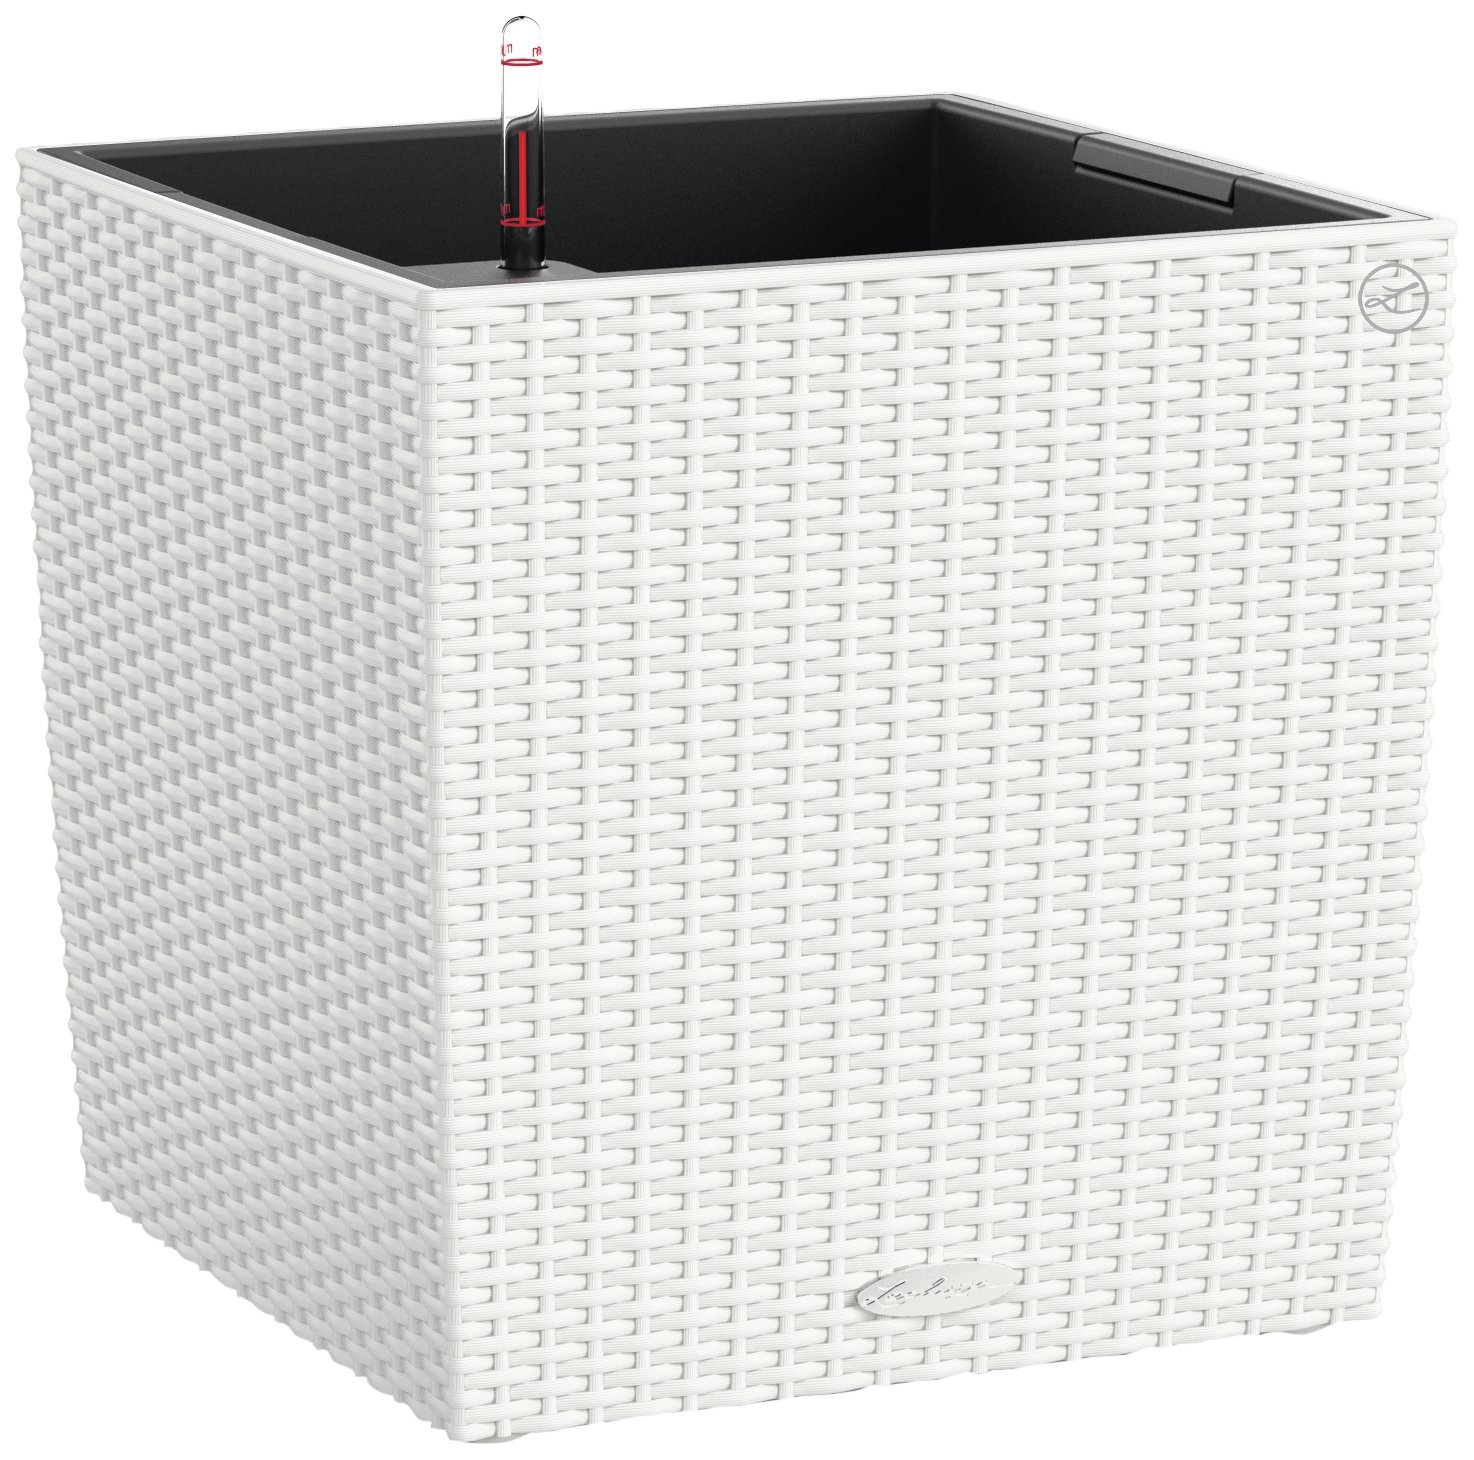 Lechuza Cube Cottage 40 Planter, White Wicker by Lechuza